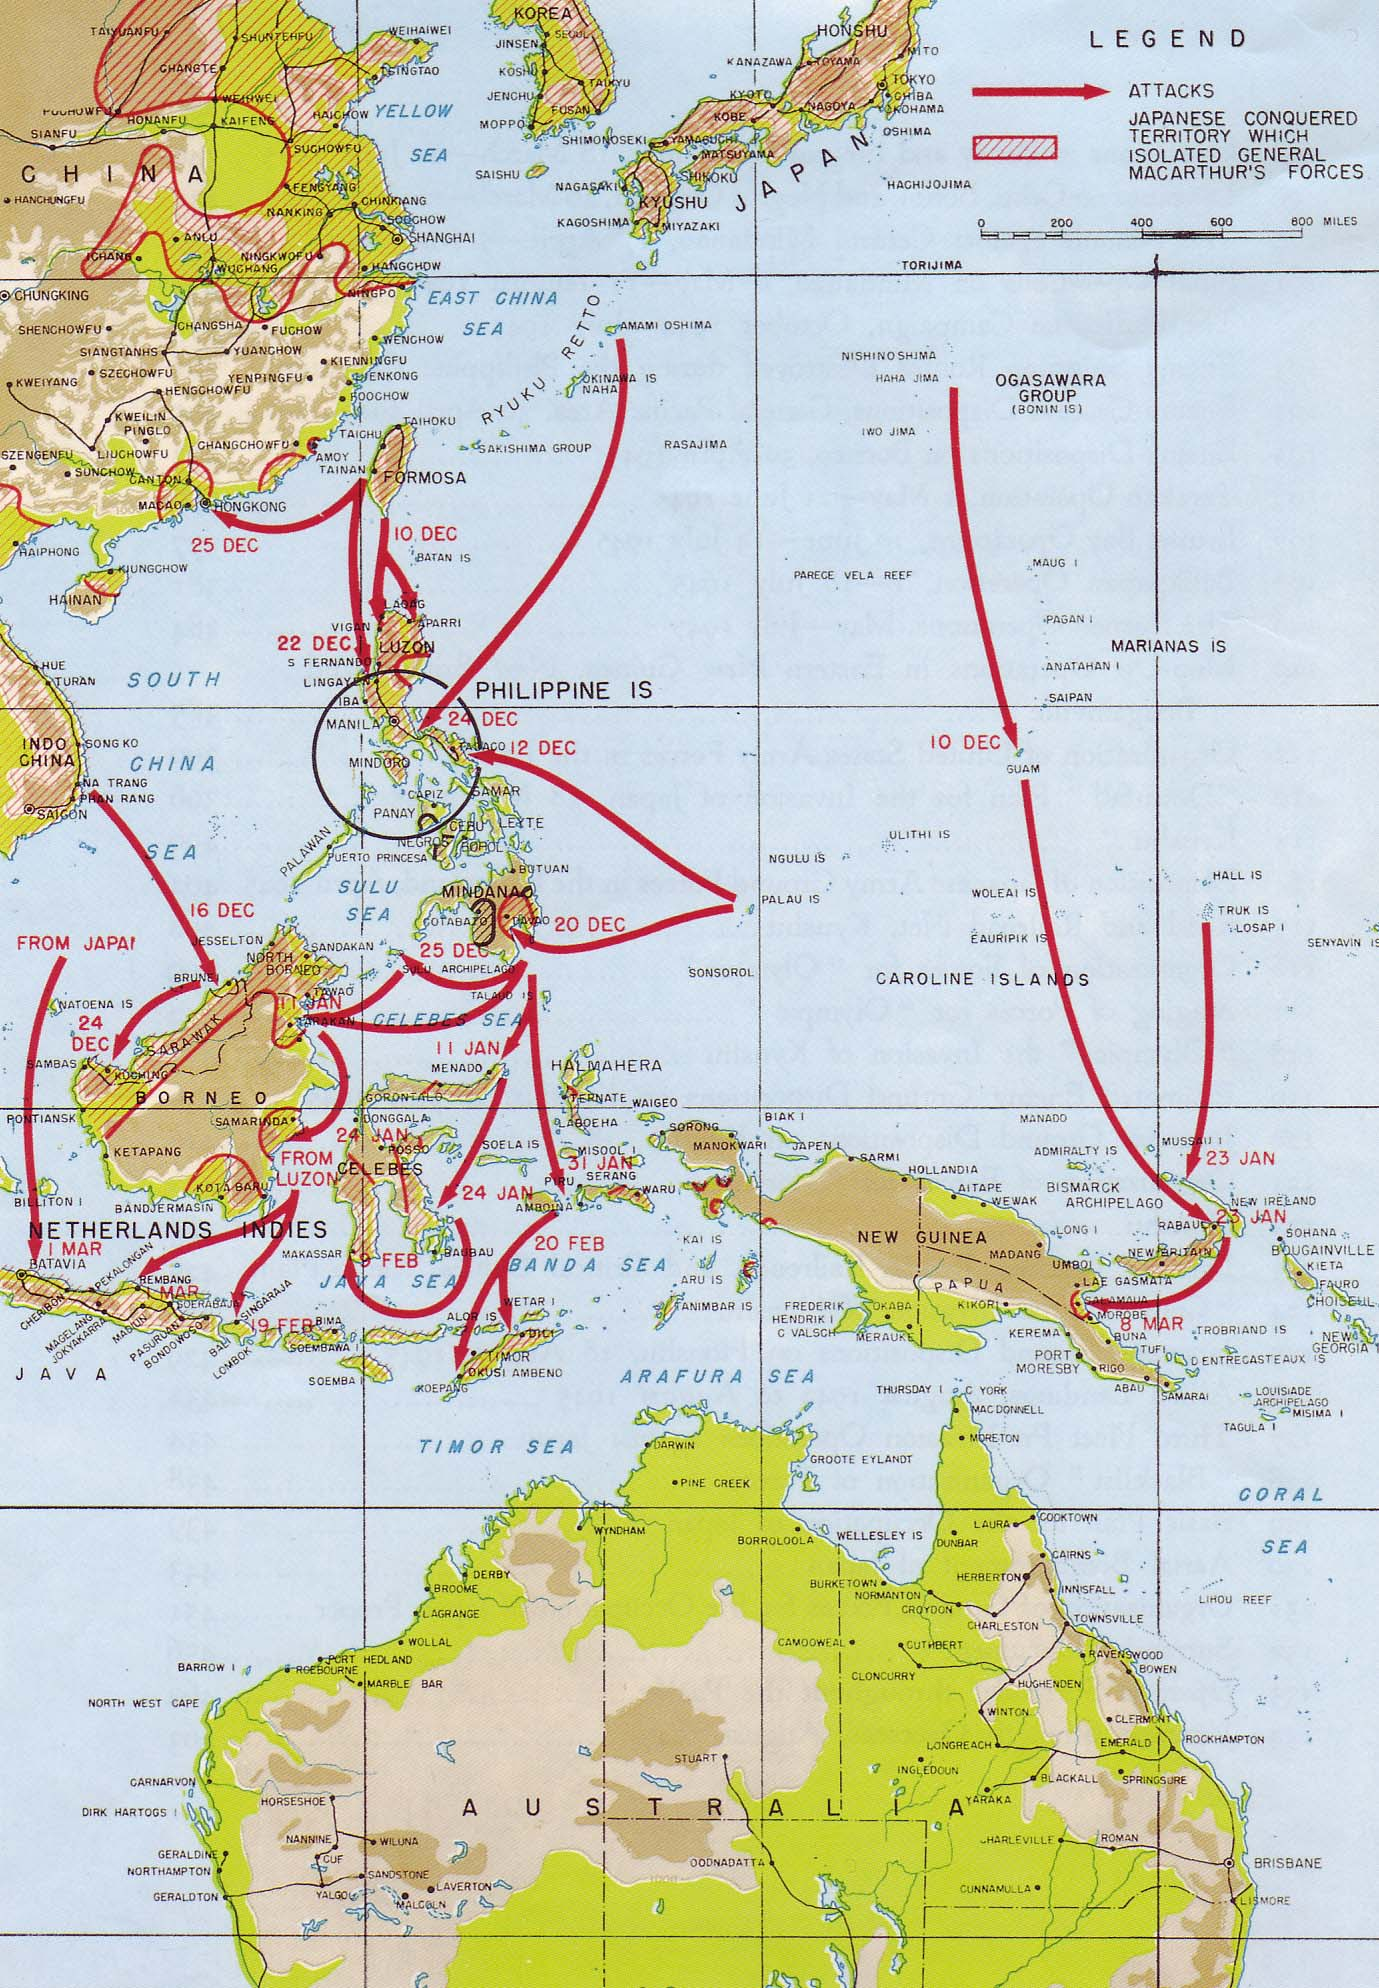 Chapter 1 the japanese offensive in the pacific 1 the japanese conquests which isolated general macarthurs forces in the philippines gumiabroncs Image collections